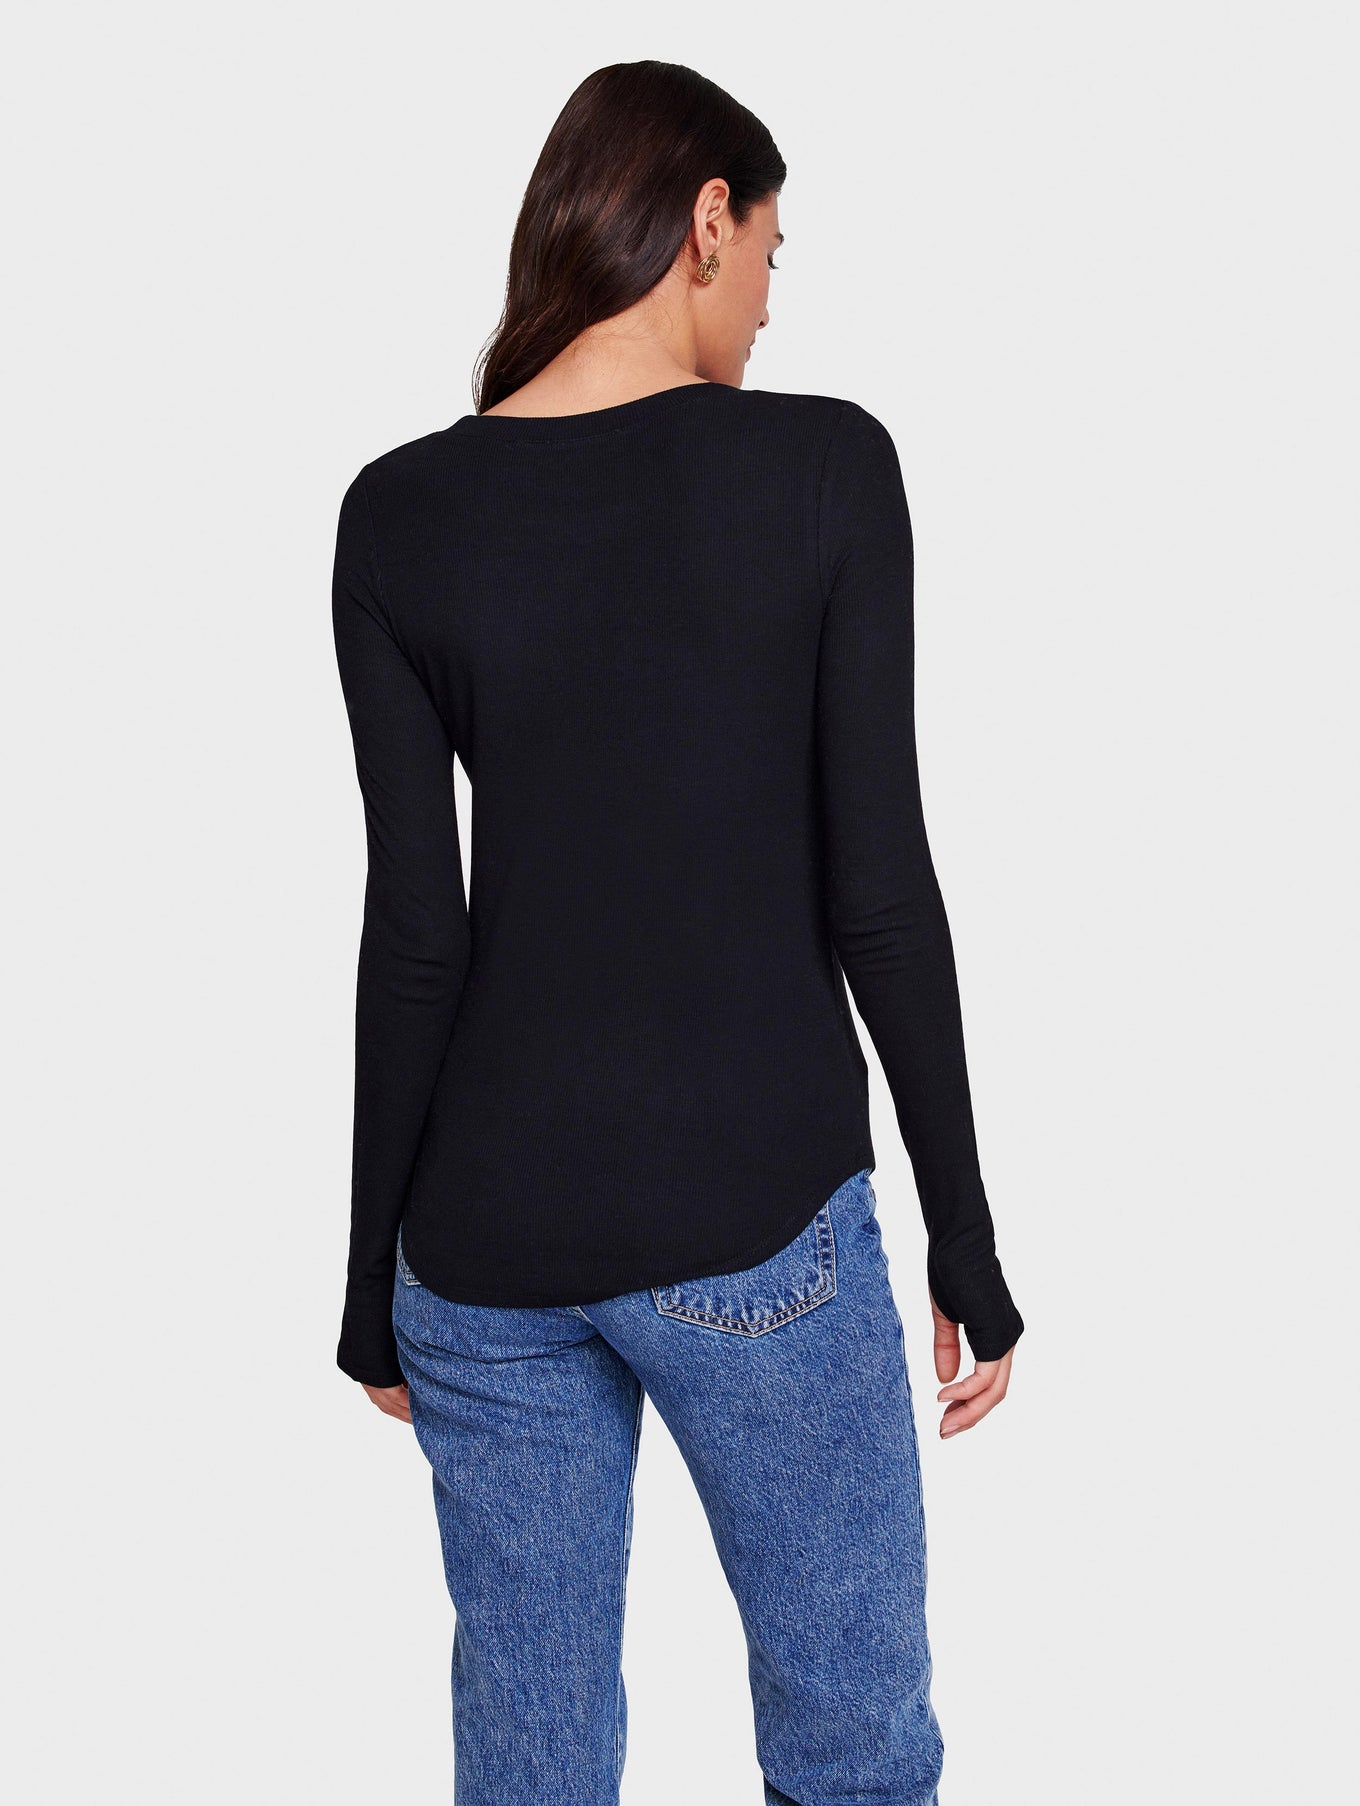 RIB JERSEY FITTED CREWNECK - Black - Image 3